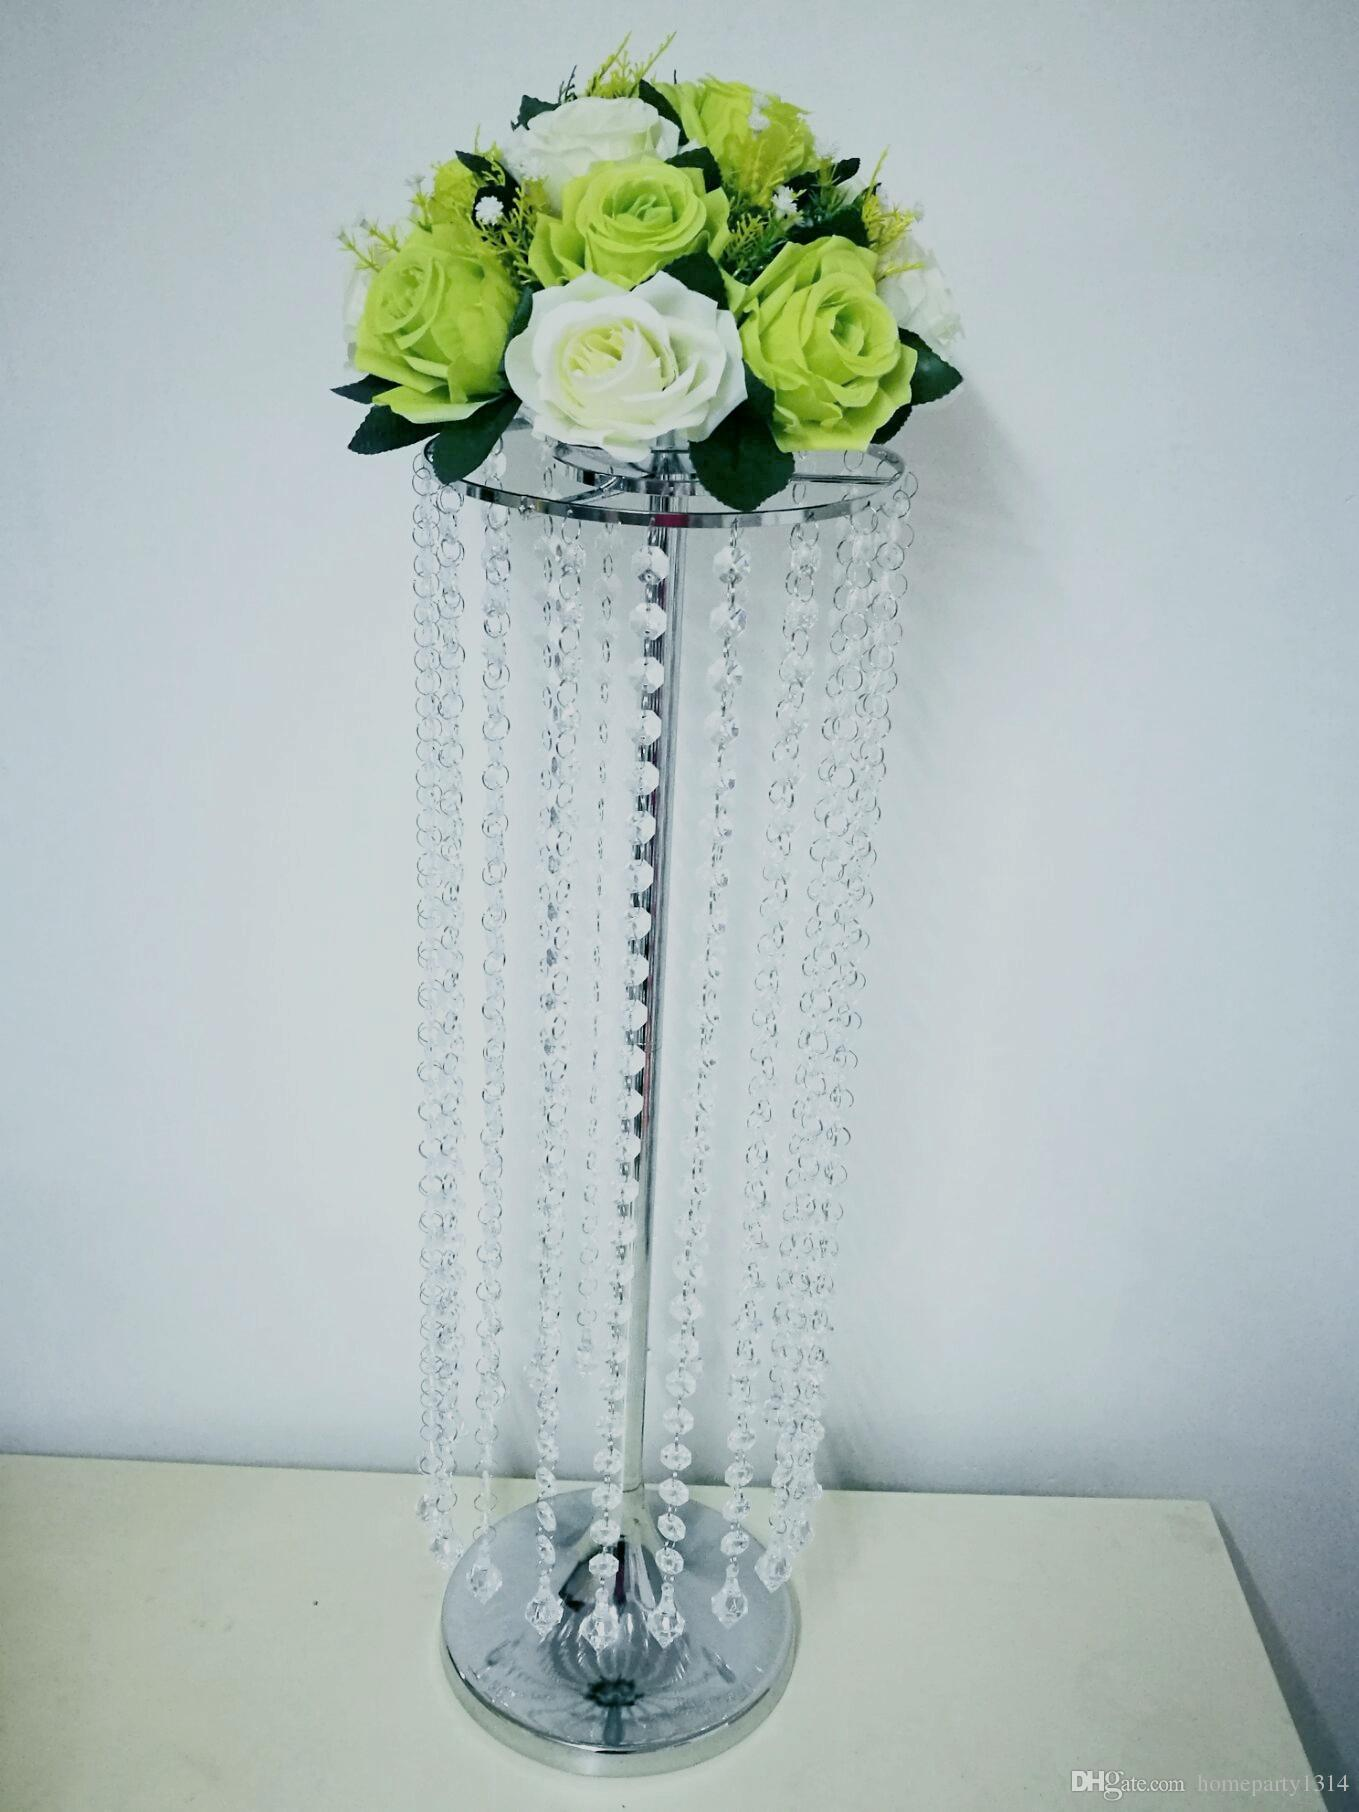 Tall 70cm Iron Stand Flower Vase Crystal Wedding table centerpieces Flower Candle Holder party event favors T-stage Road Lead